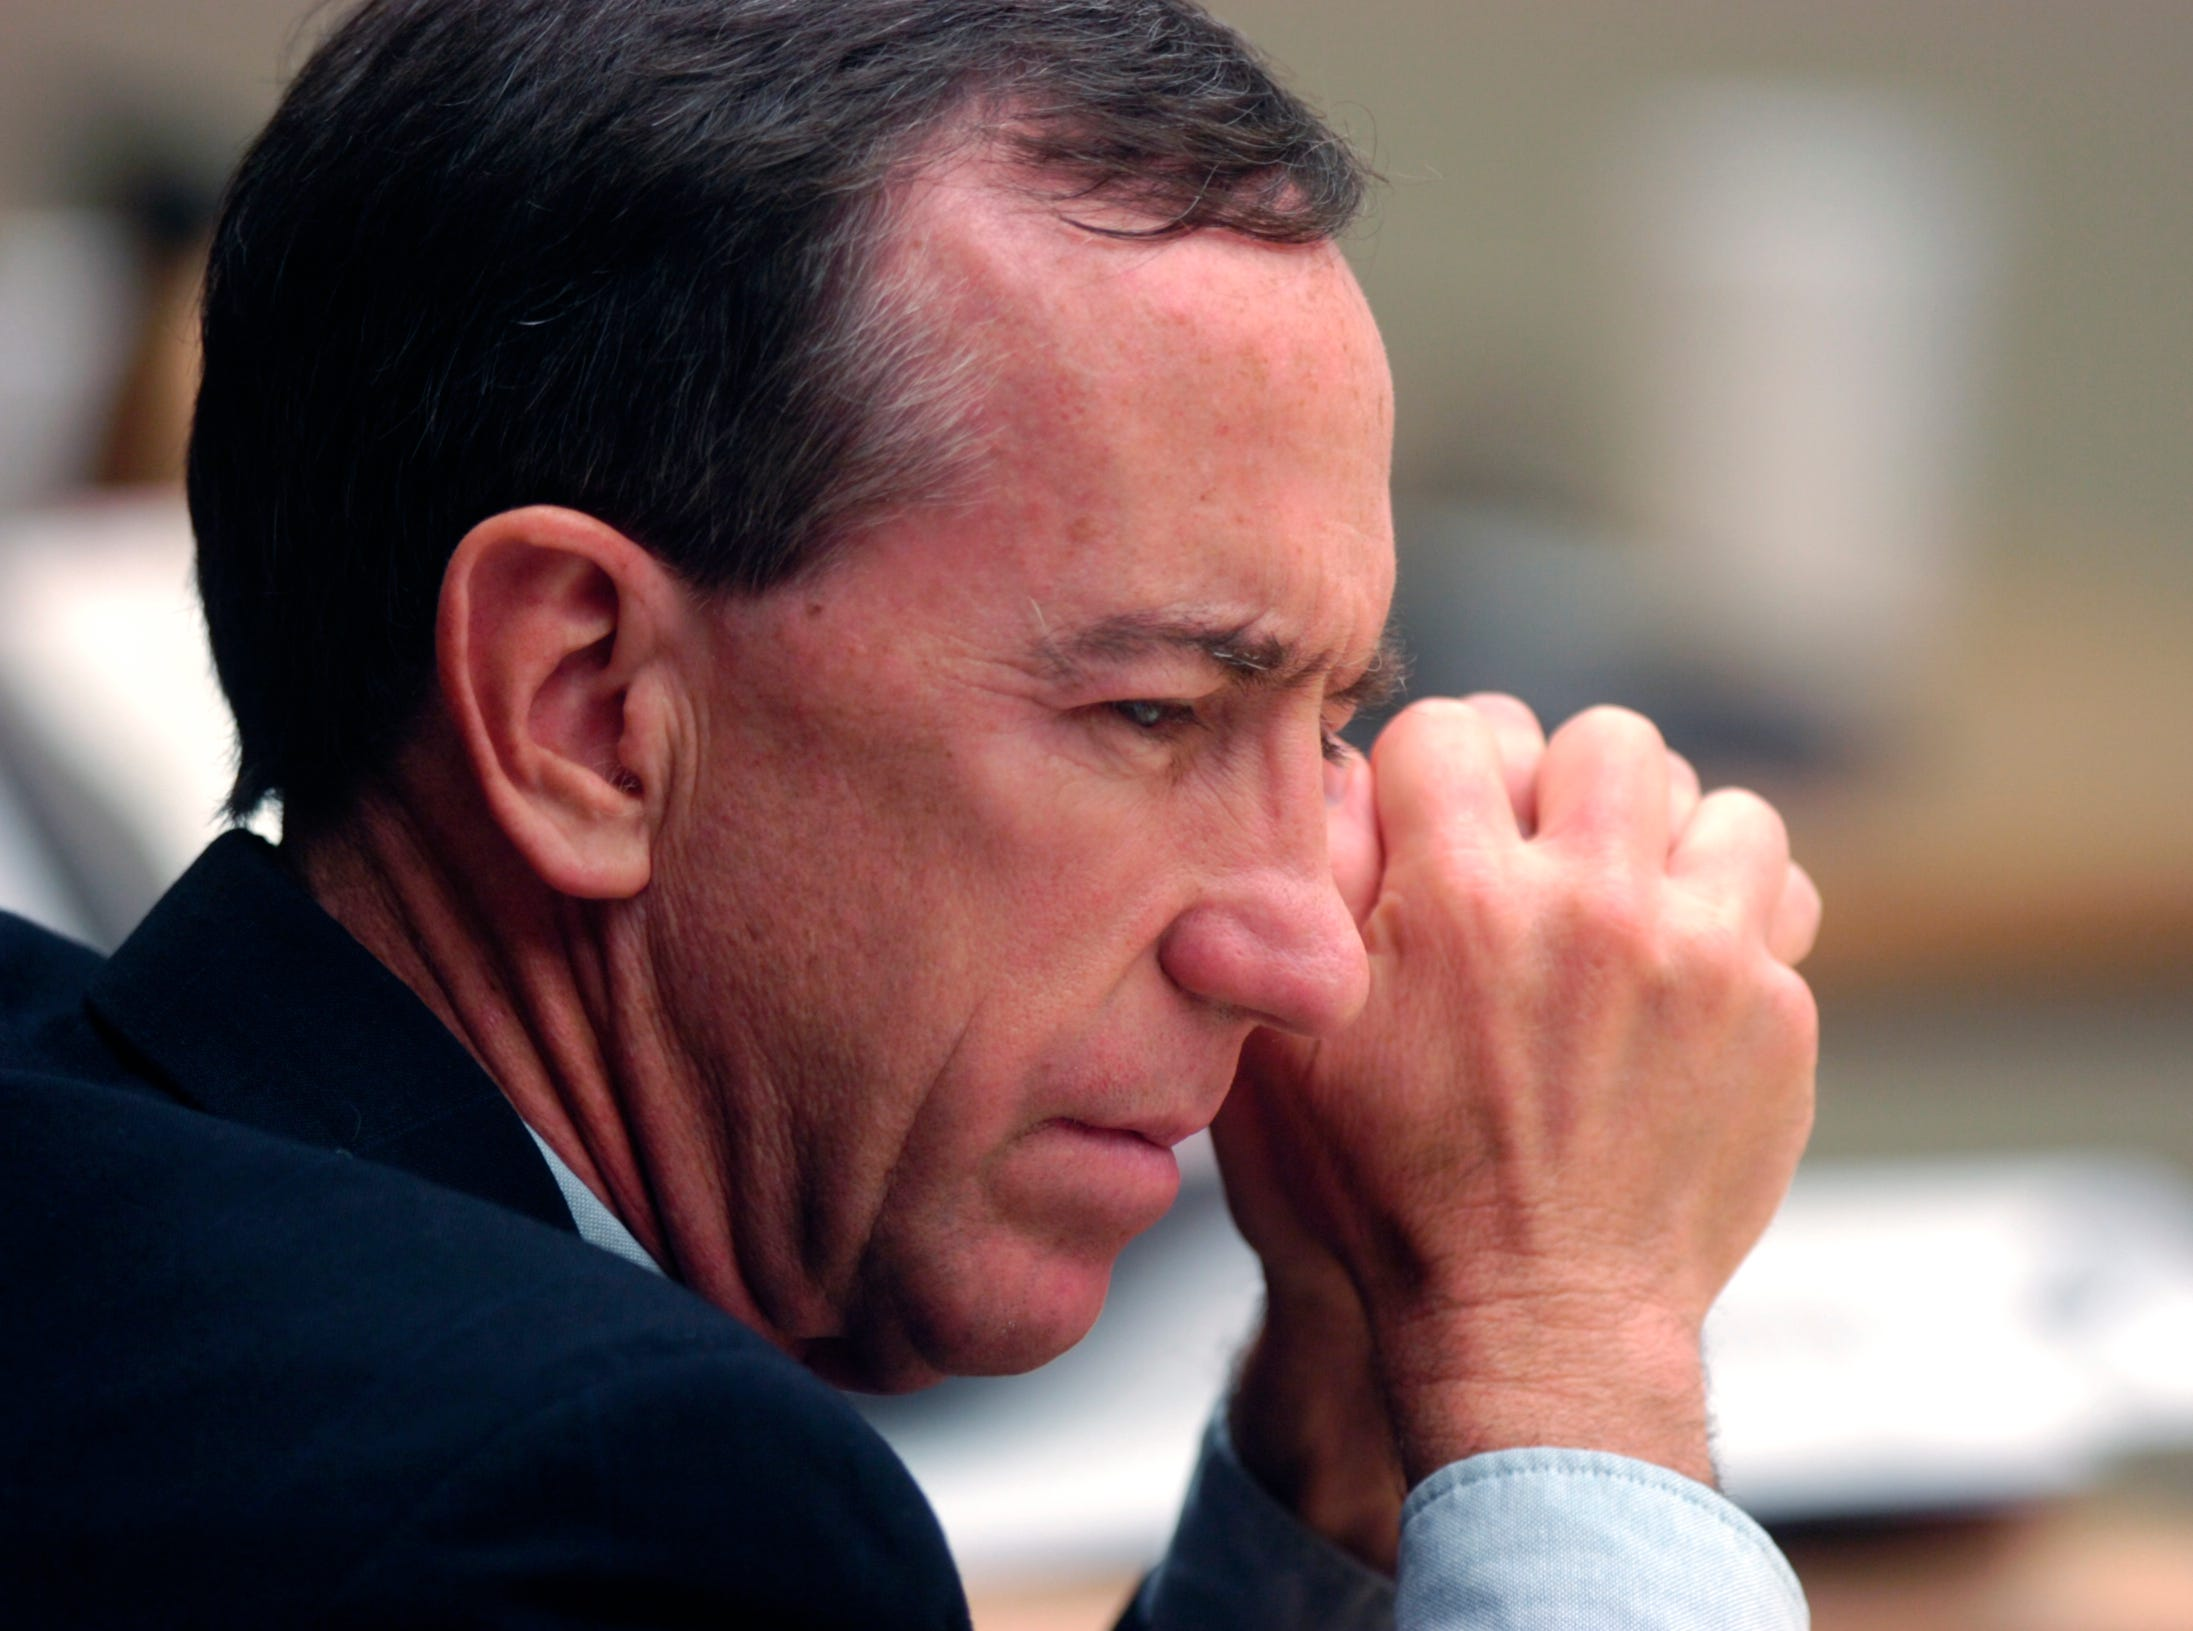 News Sentinel Editor Jack McElroy listens during courtroom discussions Friday in Knoxville. The News Sentinel has sued the Knox County Commission over alleged violations of Tennessee's Open Meetings Act. September, 28, 2007